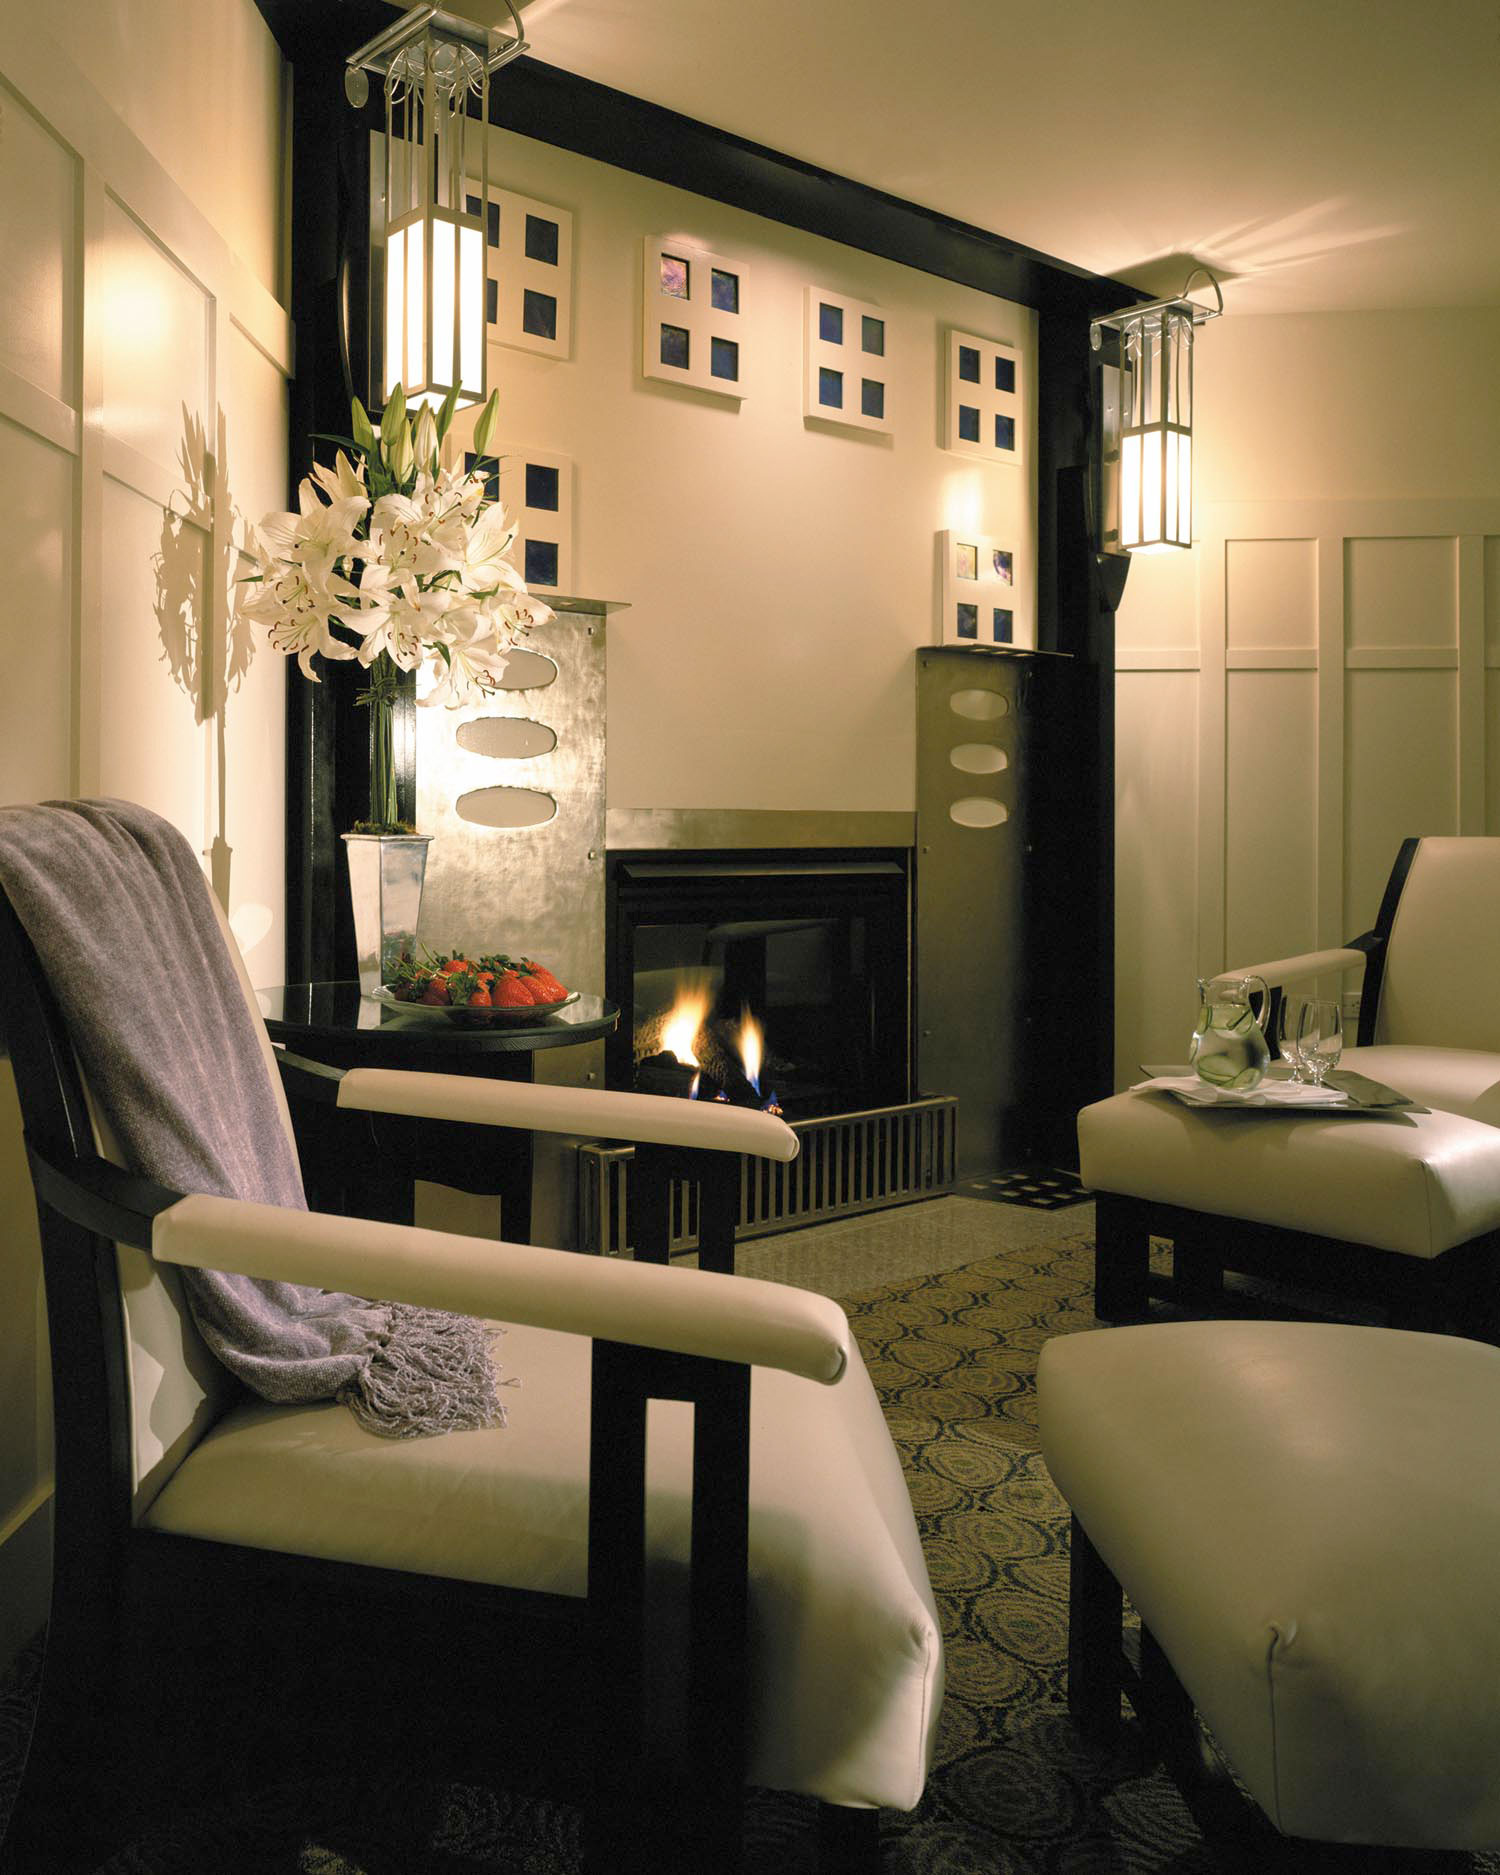 LTP-Spa_Fireplace-2.jpg